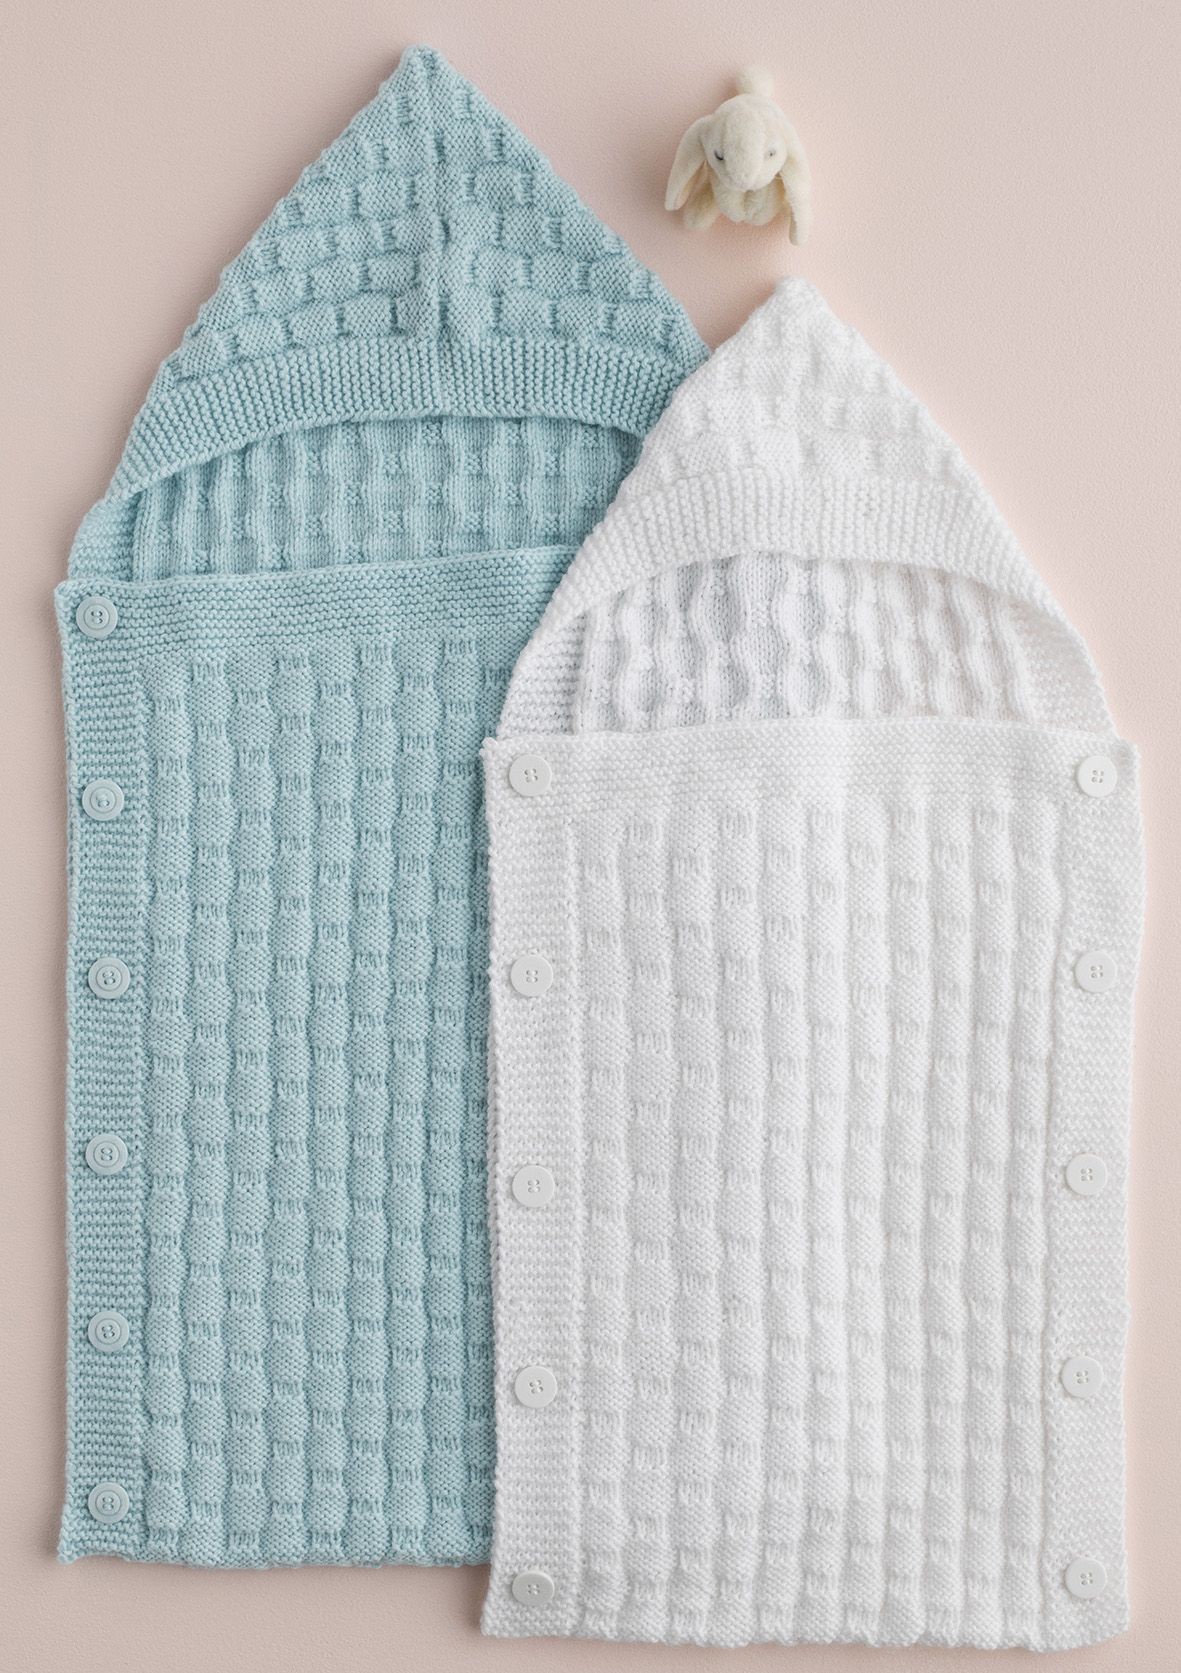 Knitted baby cocoon by Patons Australia | Baby cocoon